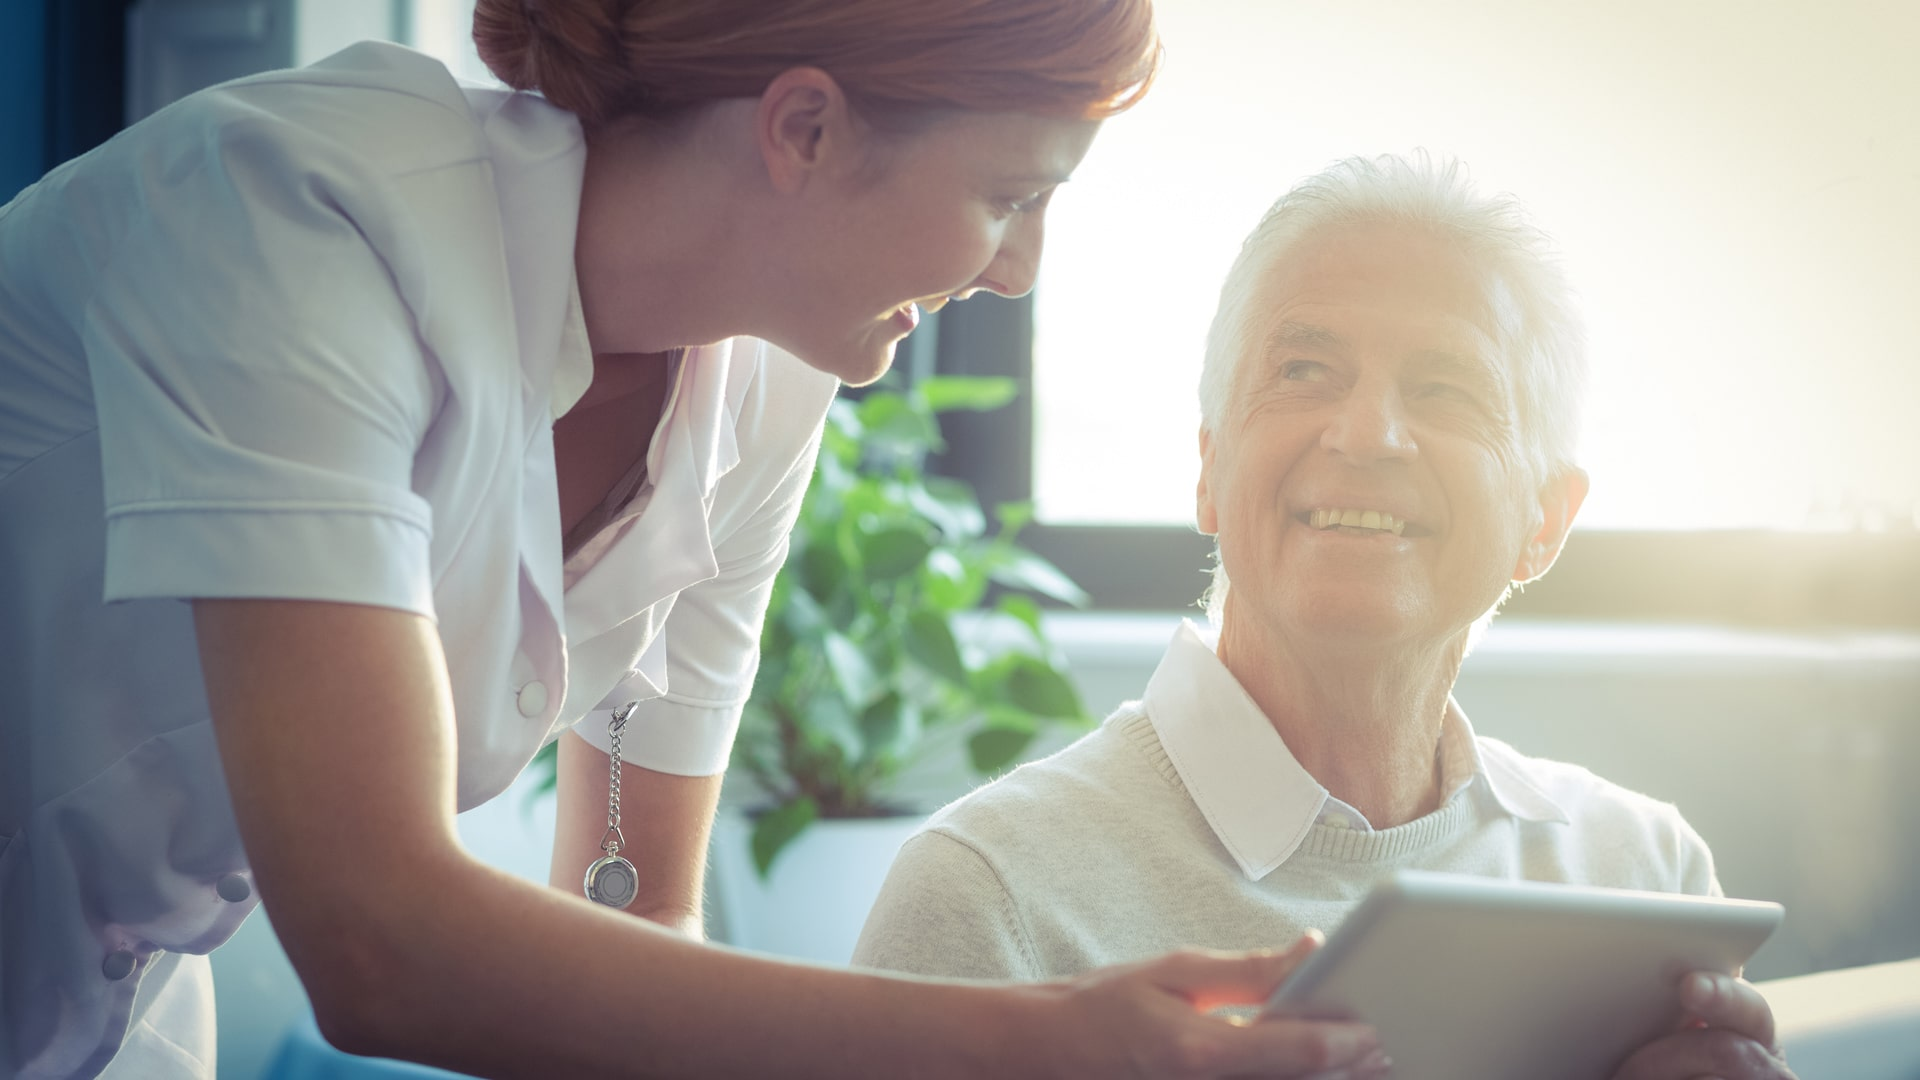 Medical connectors for home care